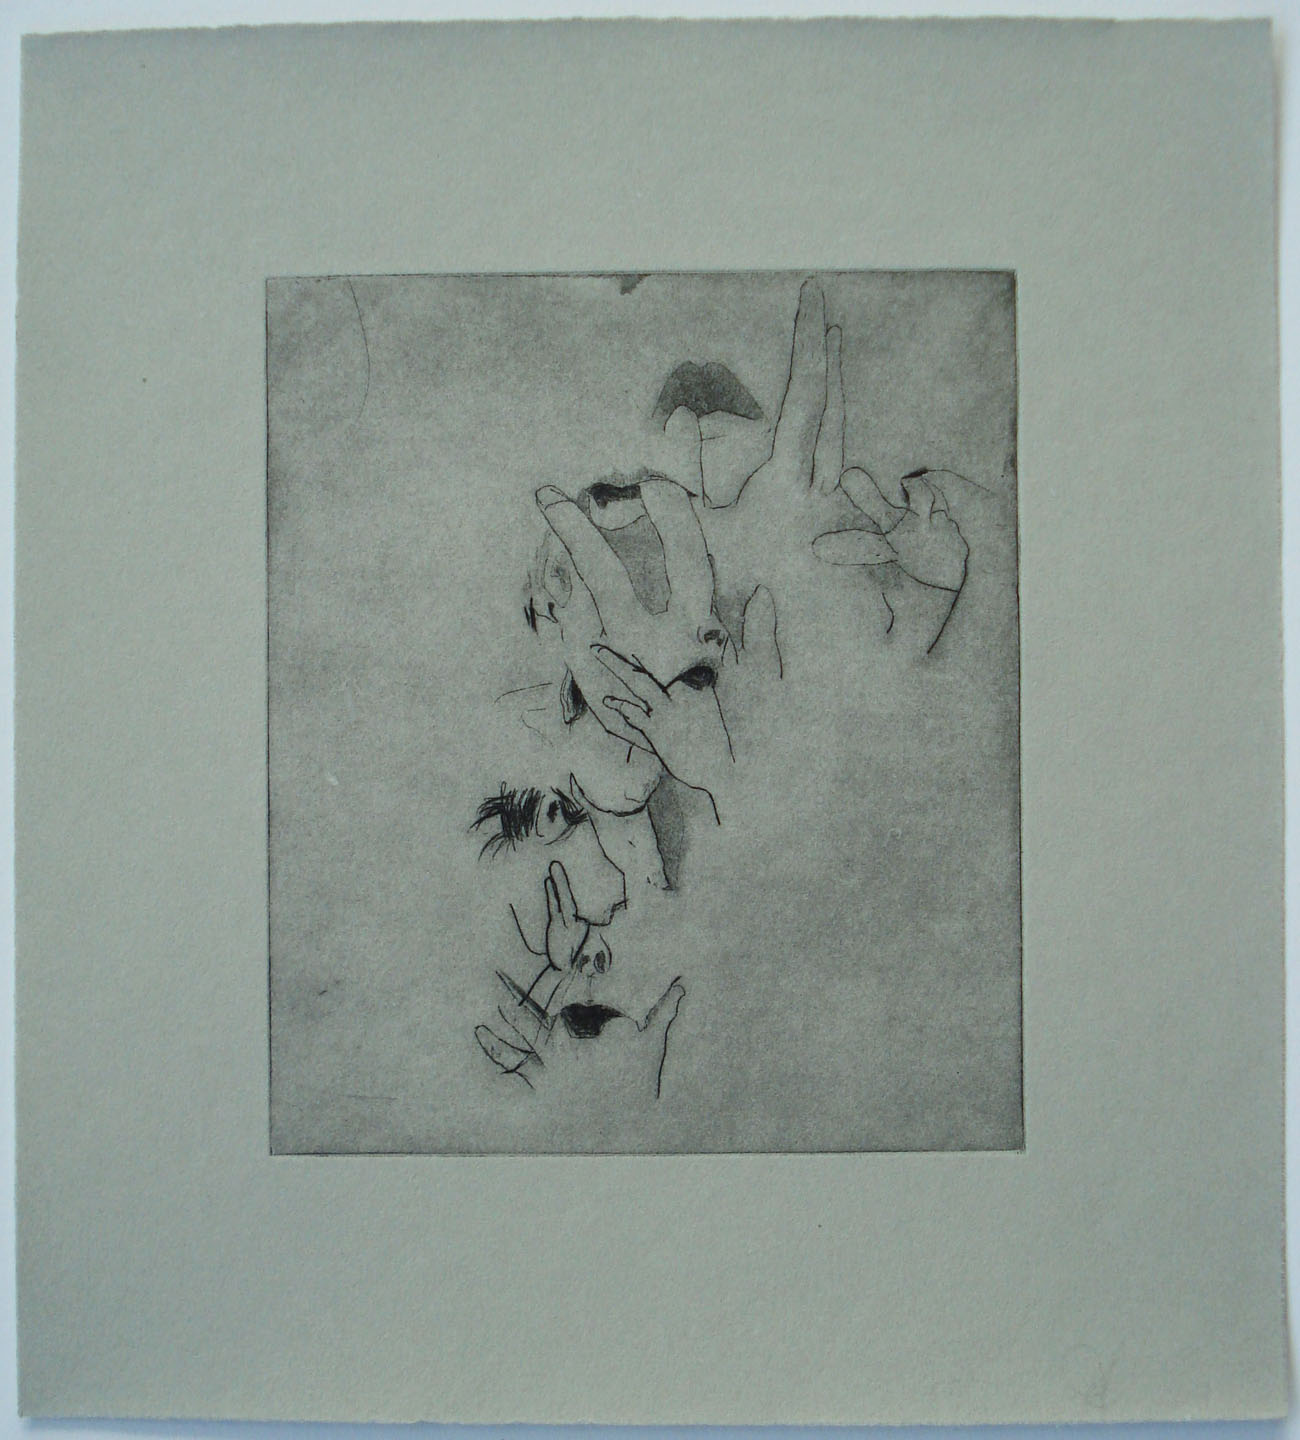 Purge,(TR SimonGreen);2004    Drypoint, 9.5 x 10.5 in